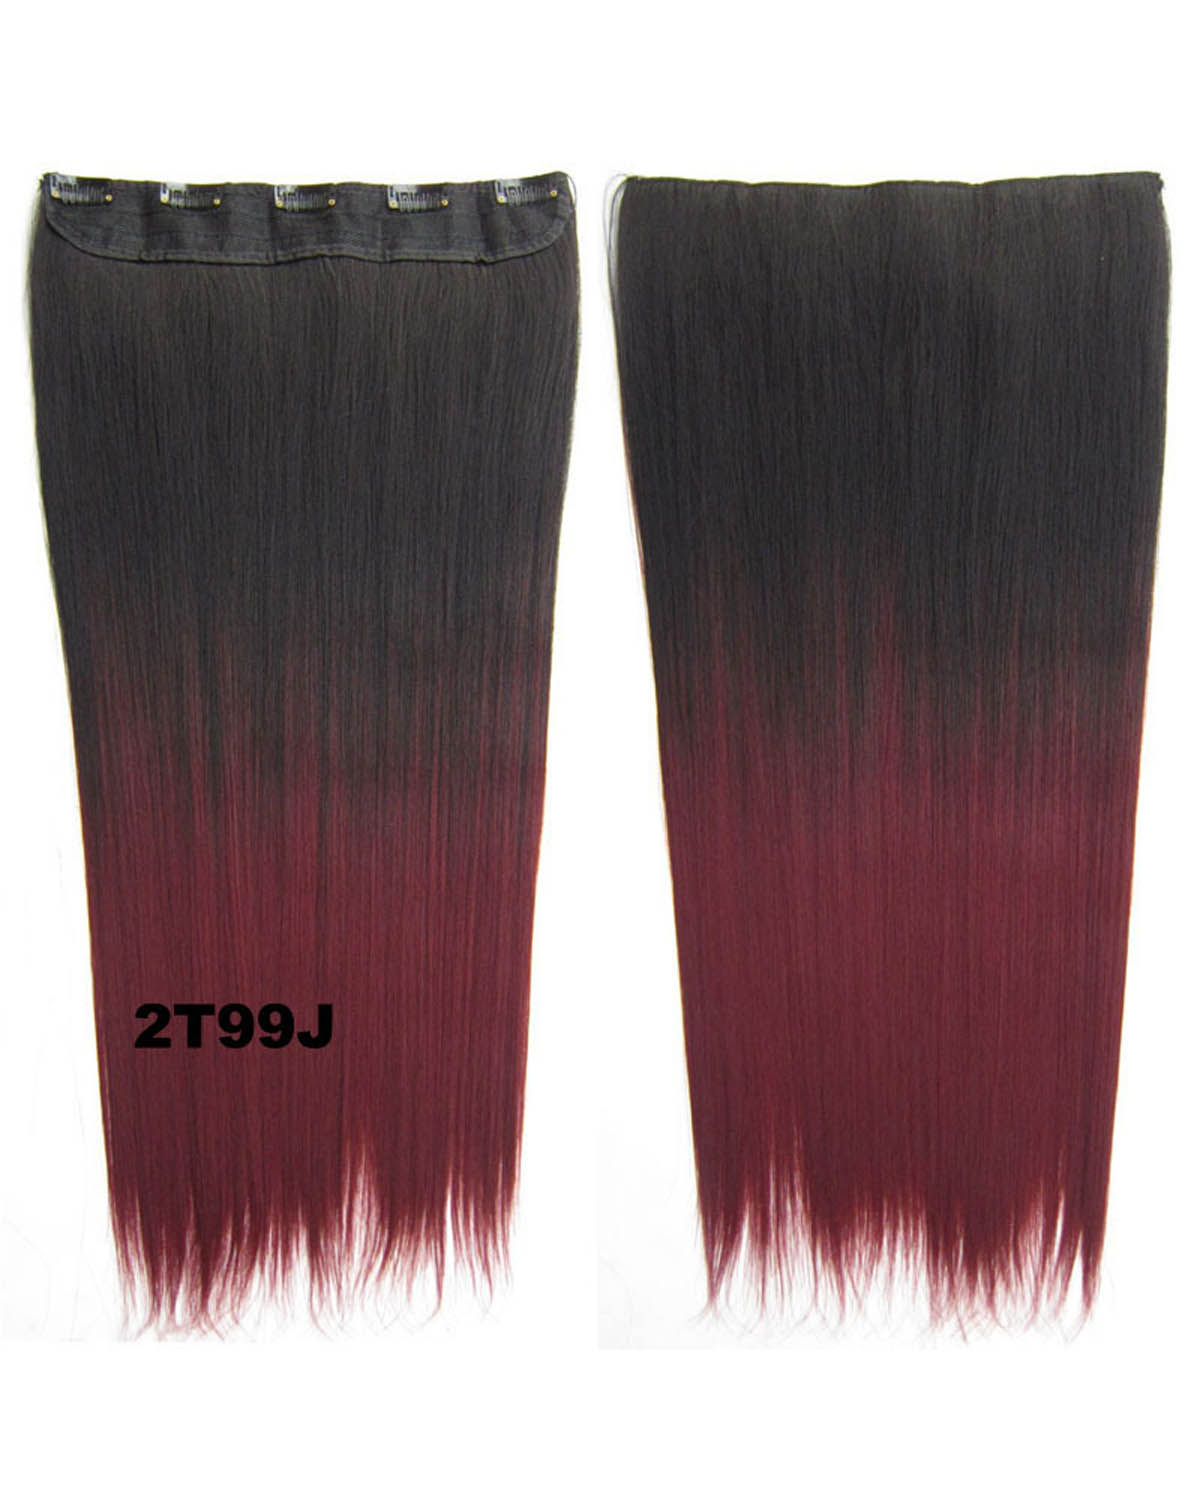 24 Inch Female Single Long Straight One Piece 5 Clips Clip in Synthetic Hair Extension Ombre2T99J